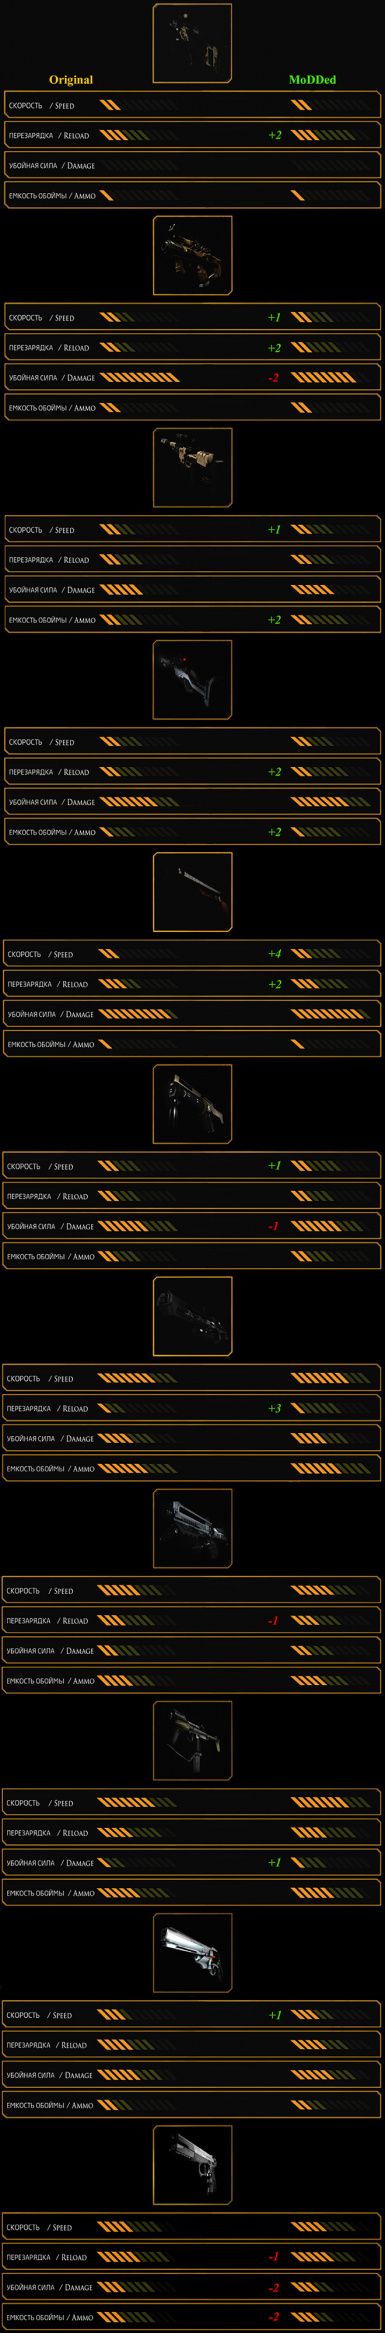 Weapon Stat Changes